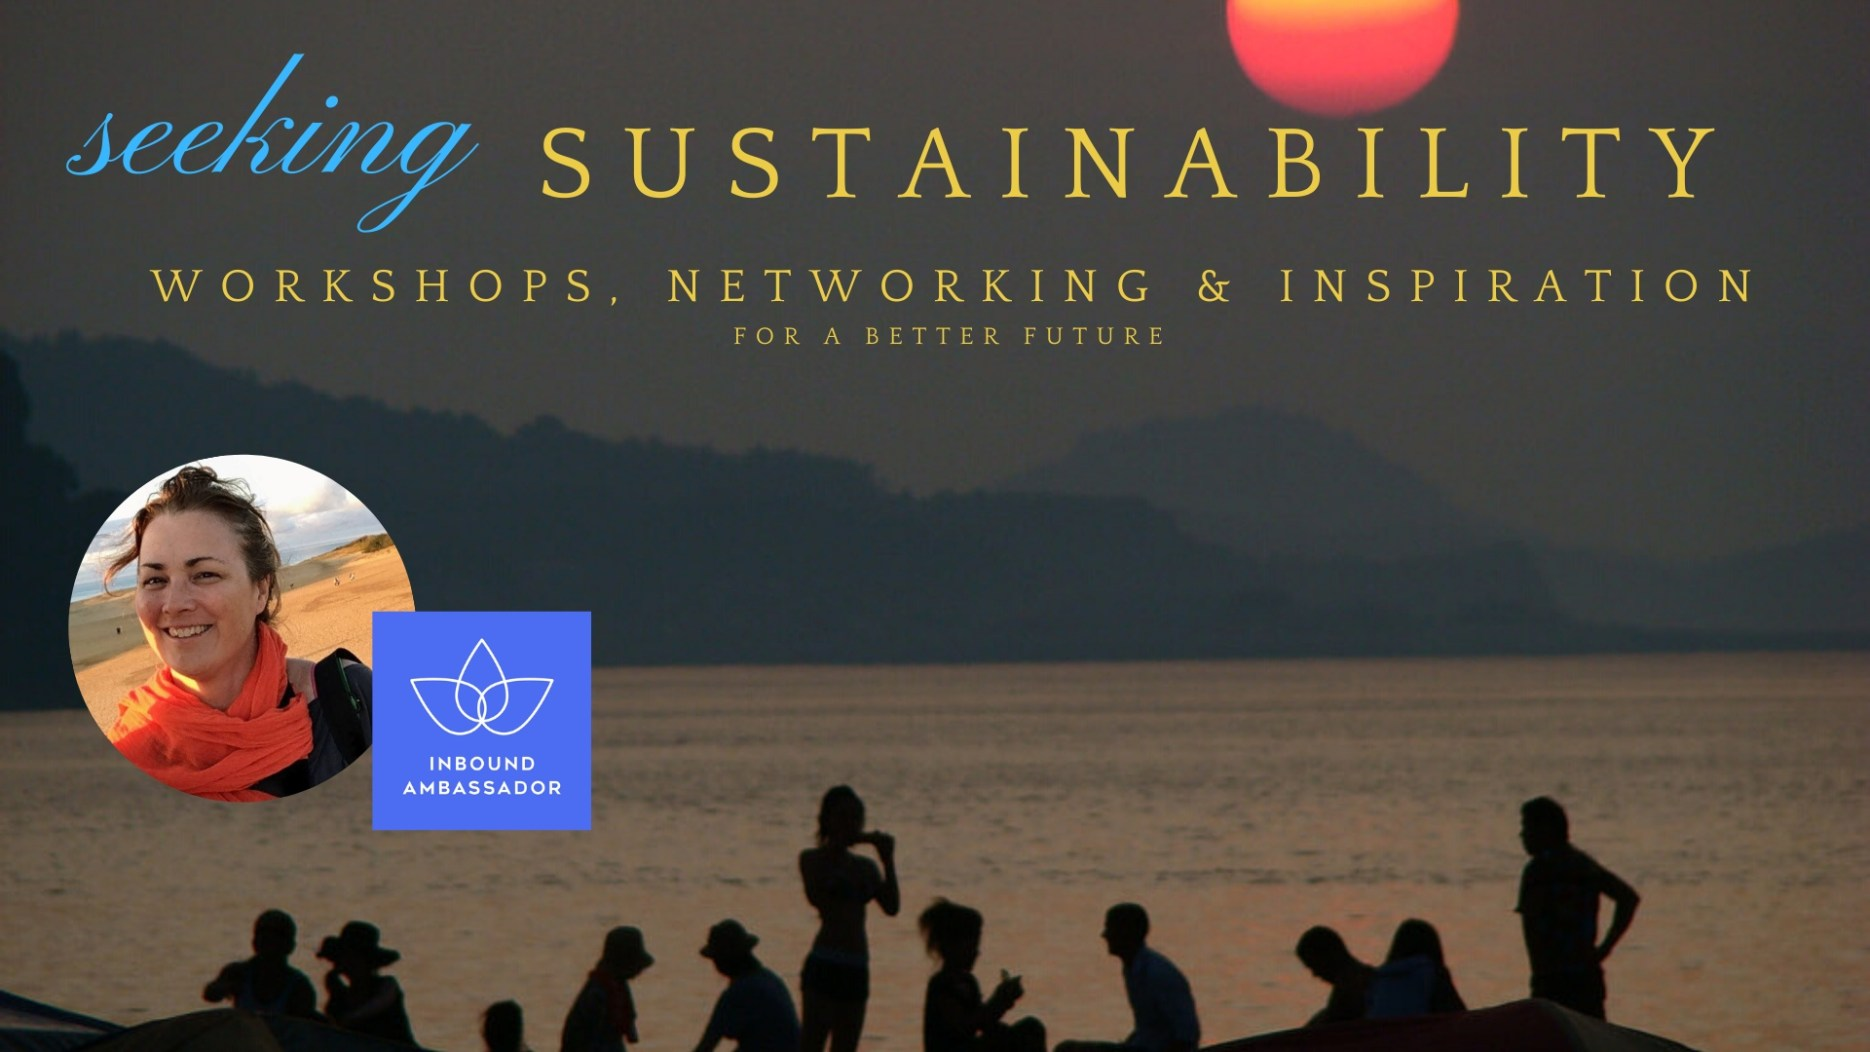 Seeking Sustainability Event